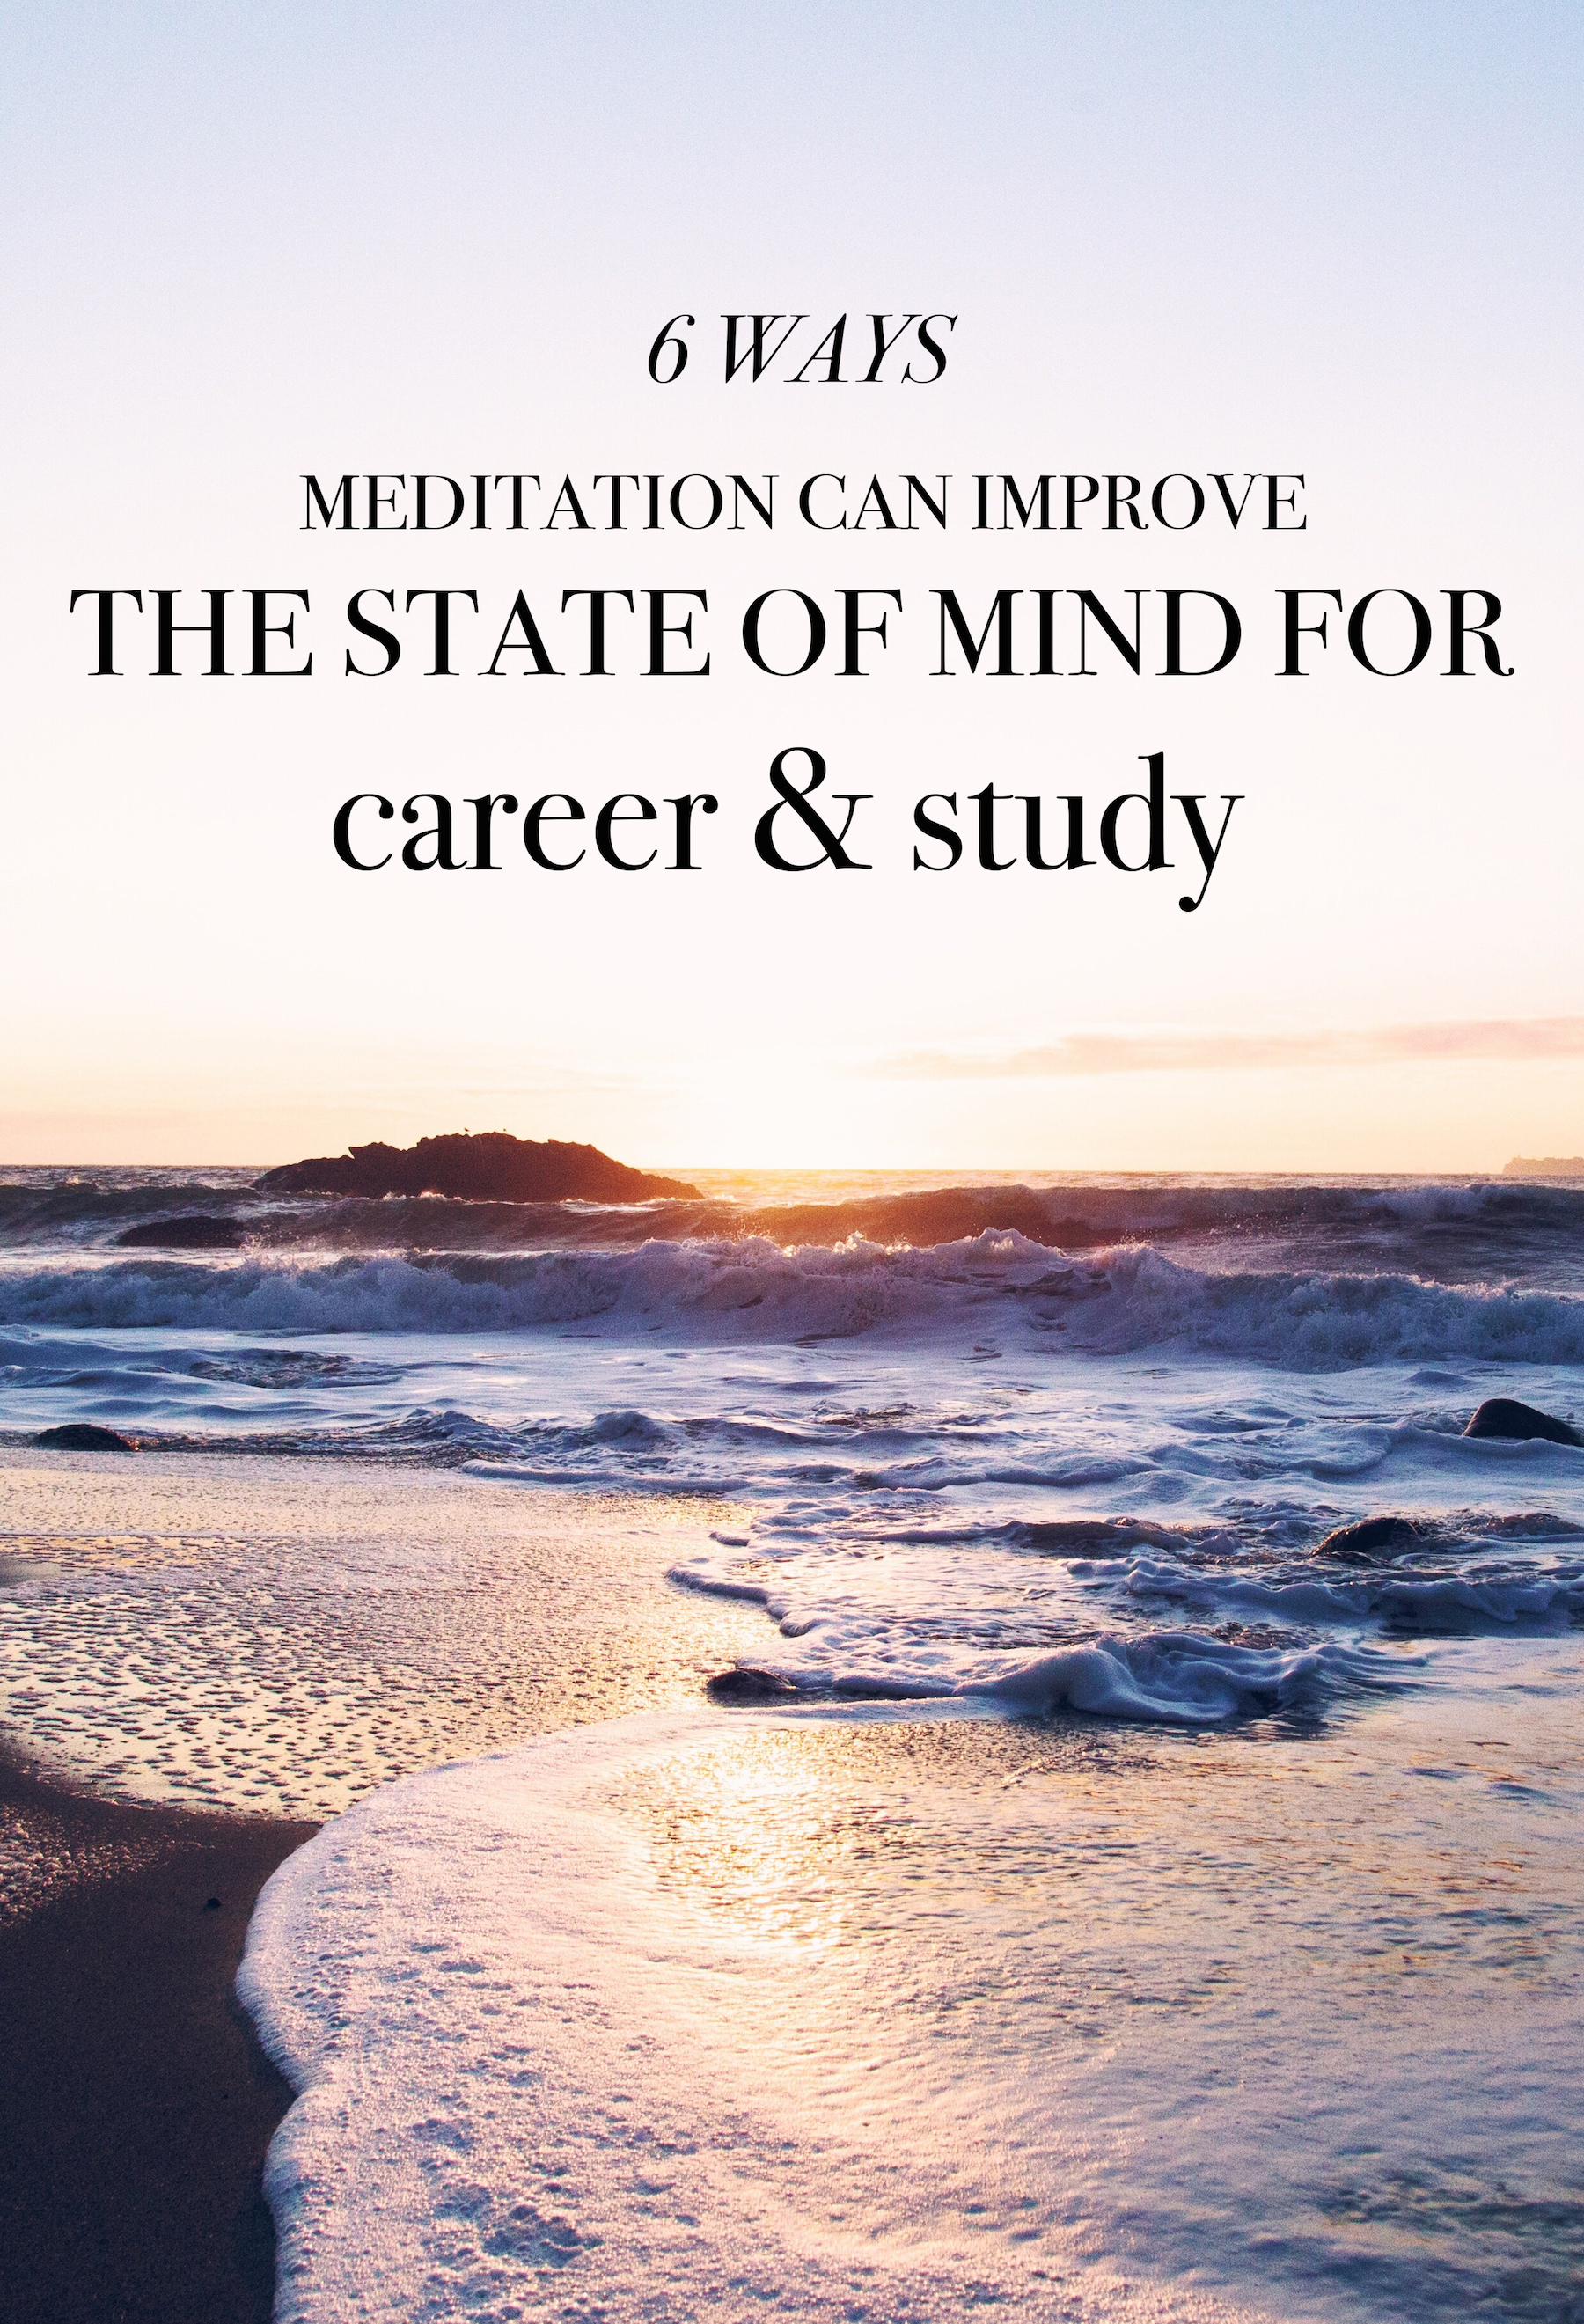 6 Ways Meditation Can Improve The State of Mind for Career and Study - Click here to learn how you can easily learn the tricks!